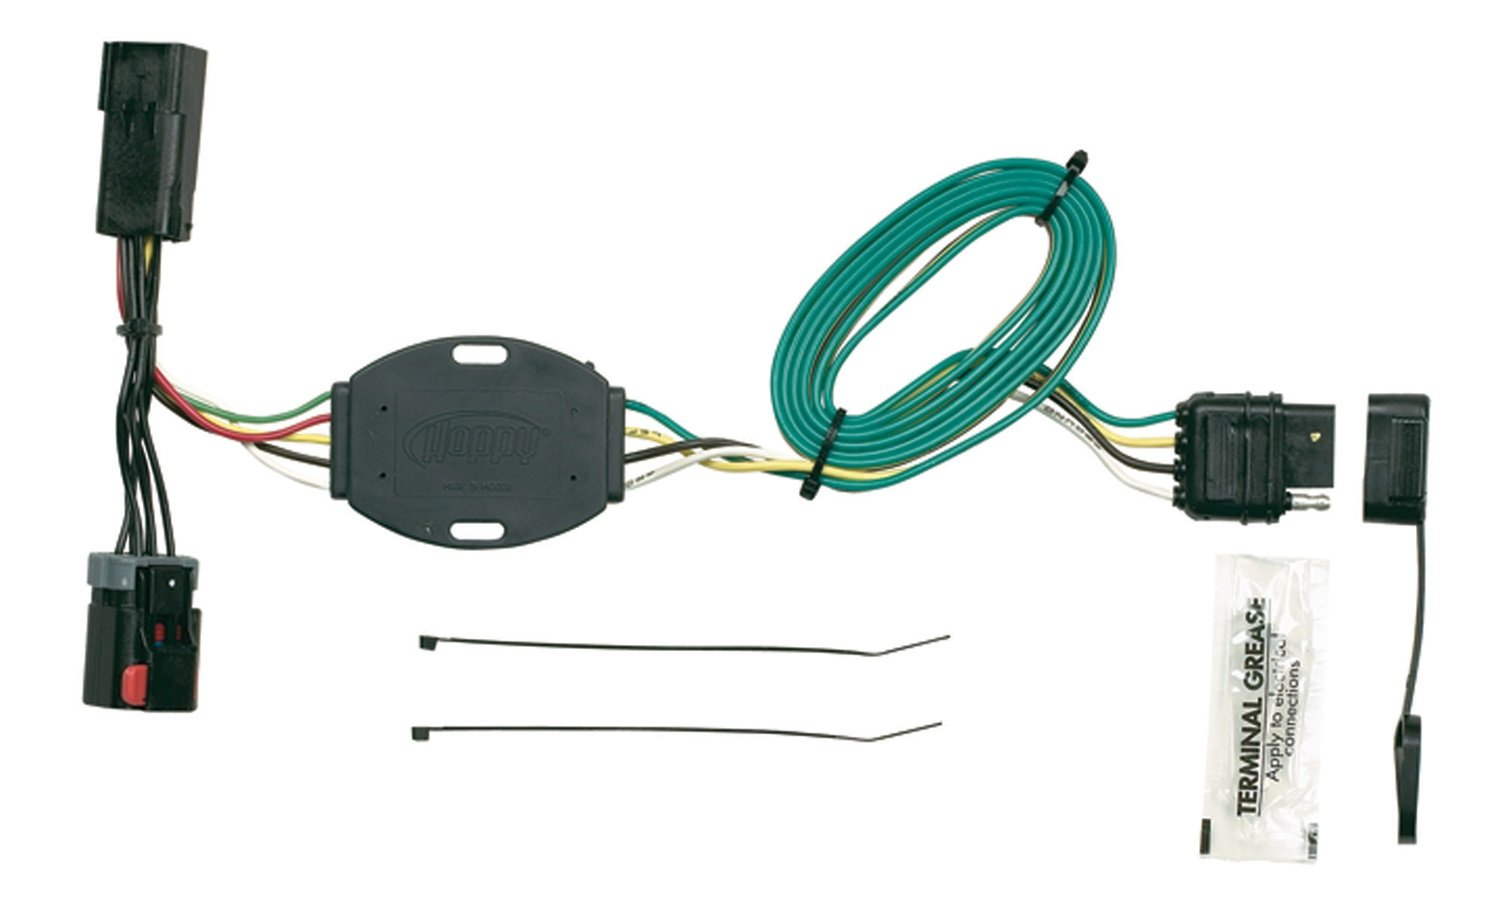 Amazoncom Hopkins 42225 PlugIn Simple Vehicle Wiring Kit